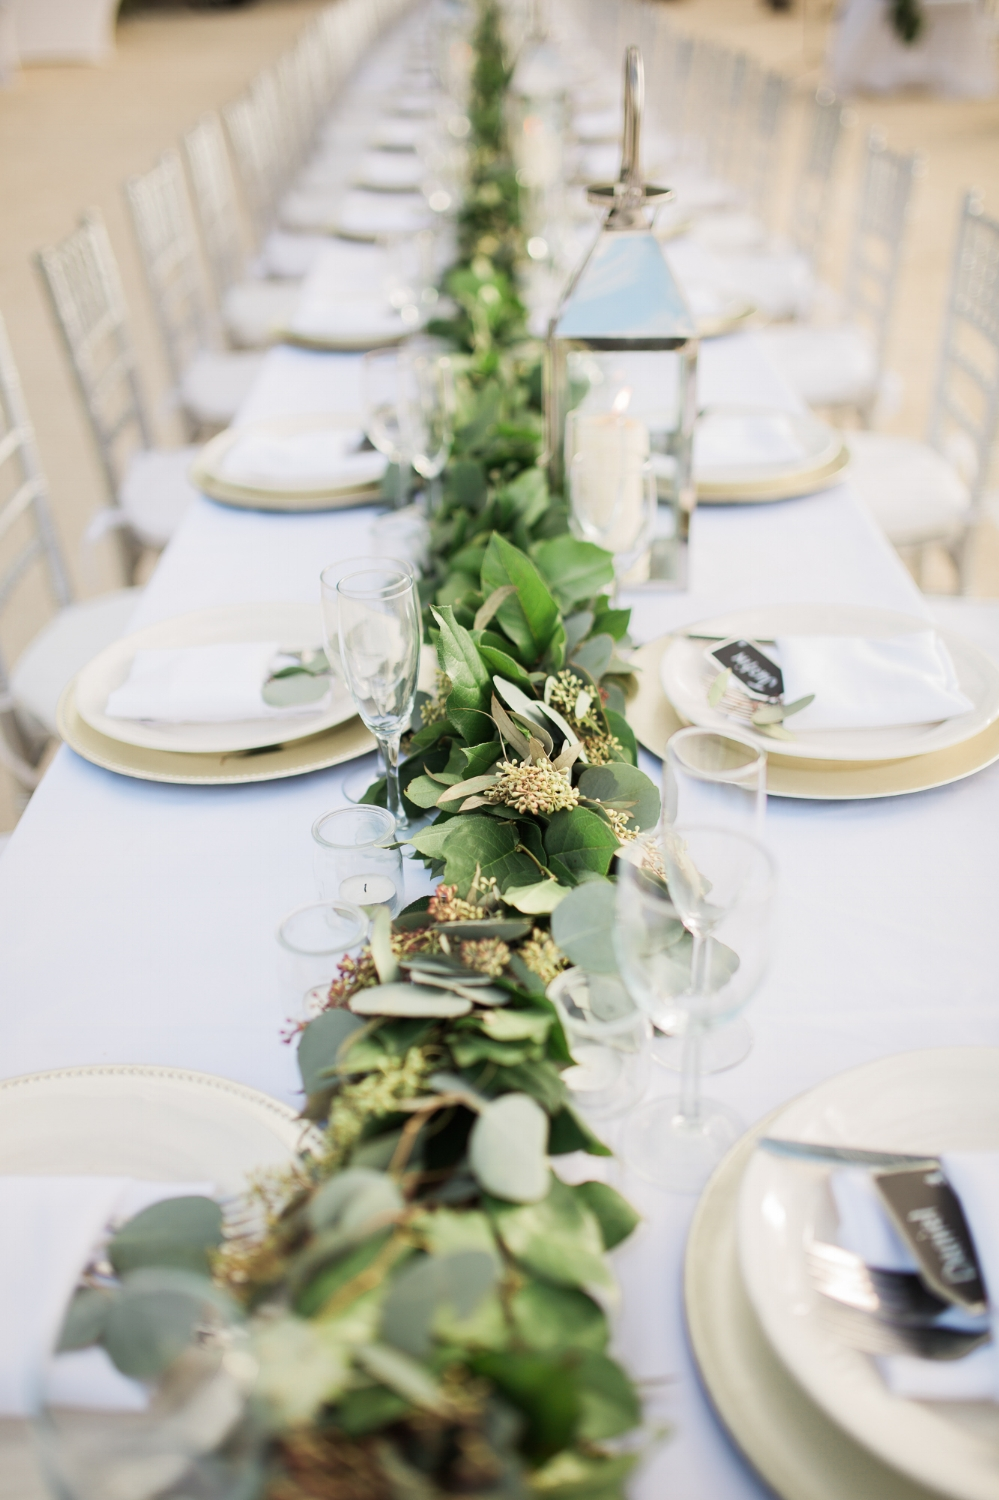 Eucalyptus garland on table at Coconut Palm Inn